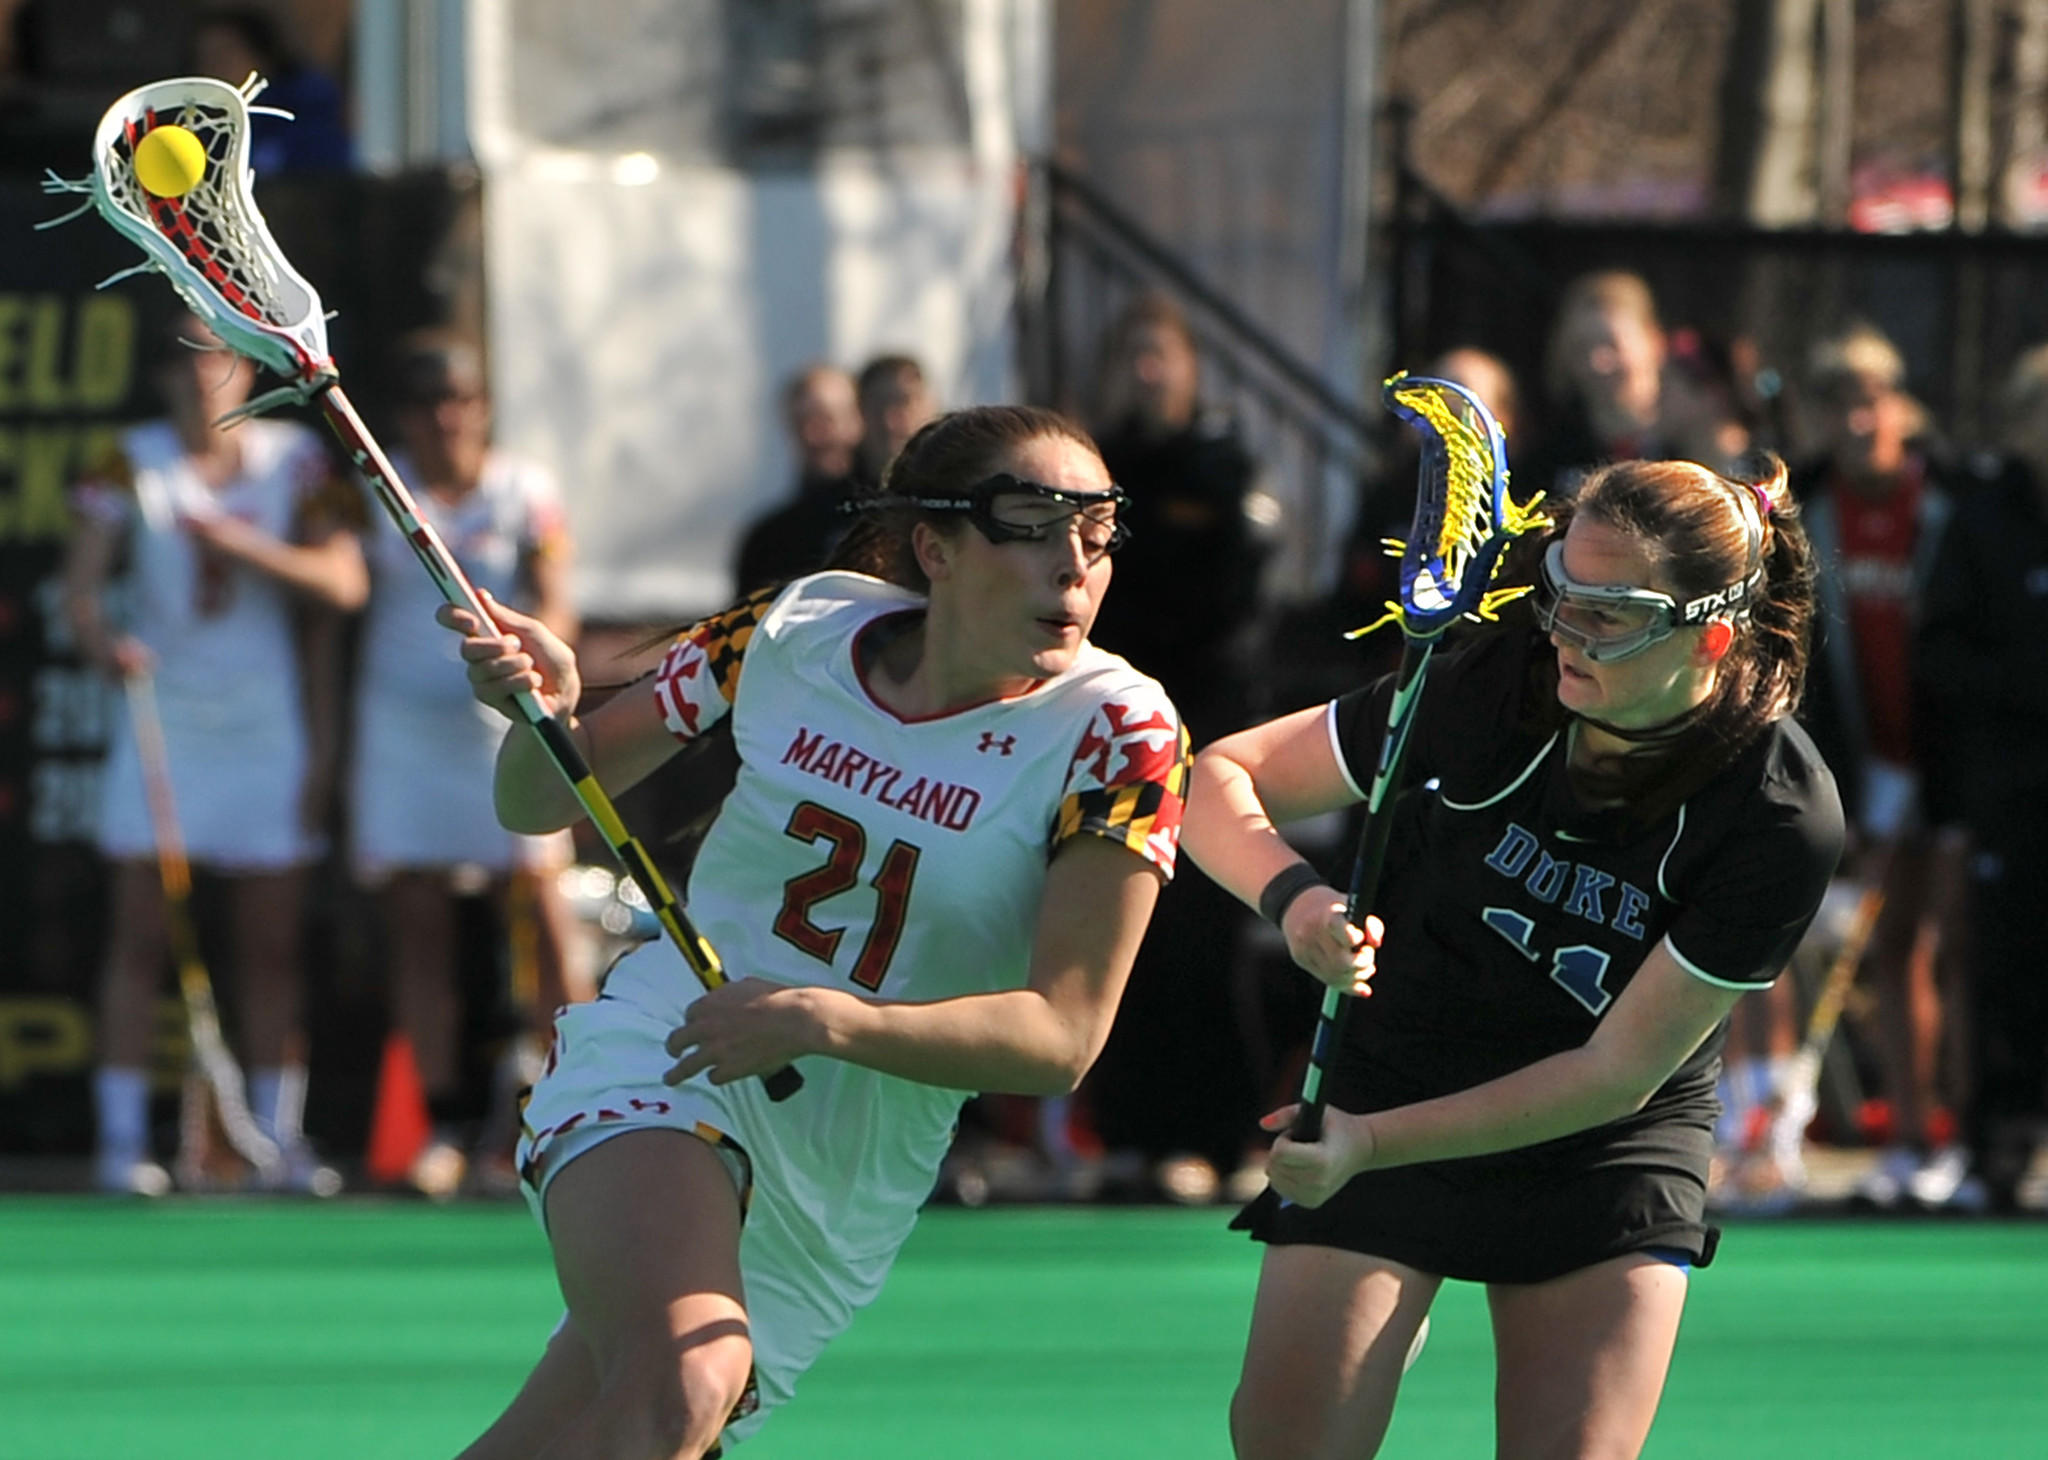 Maryland's Taylor Cummings, here matched against Duke's Erin Tenneson, was one of three Terps named to the 2014 Tewaaraton Award Watch List.